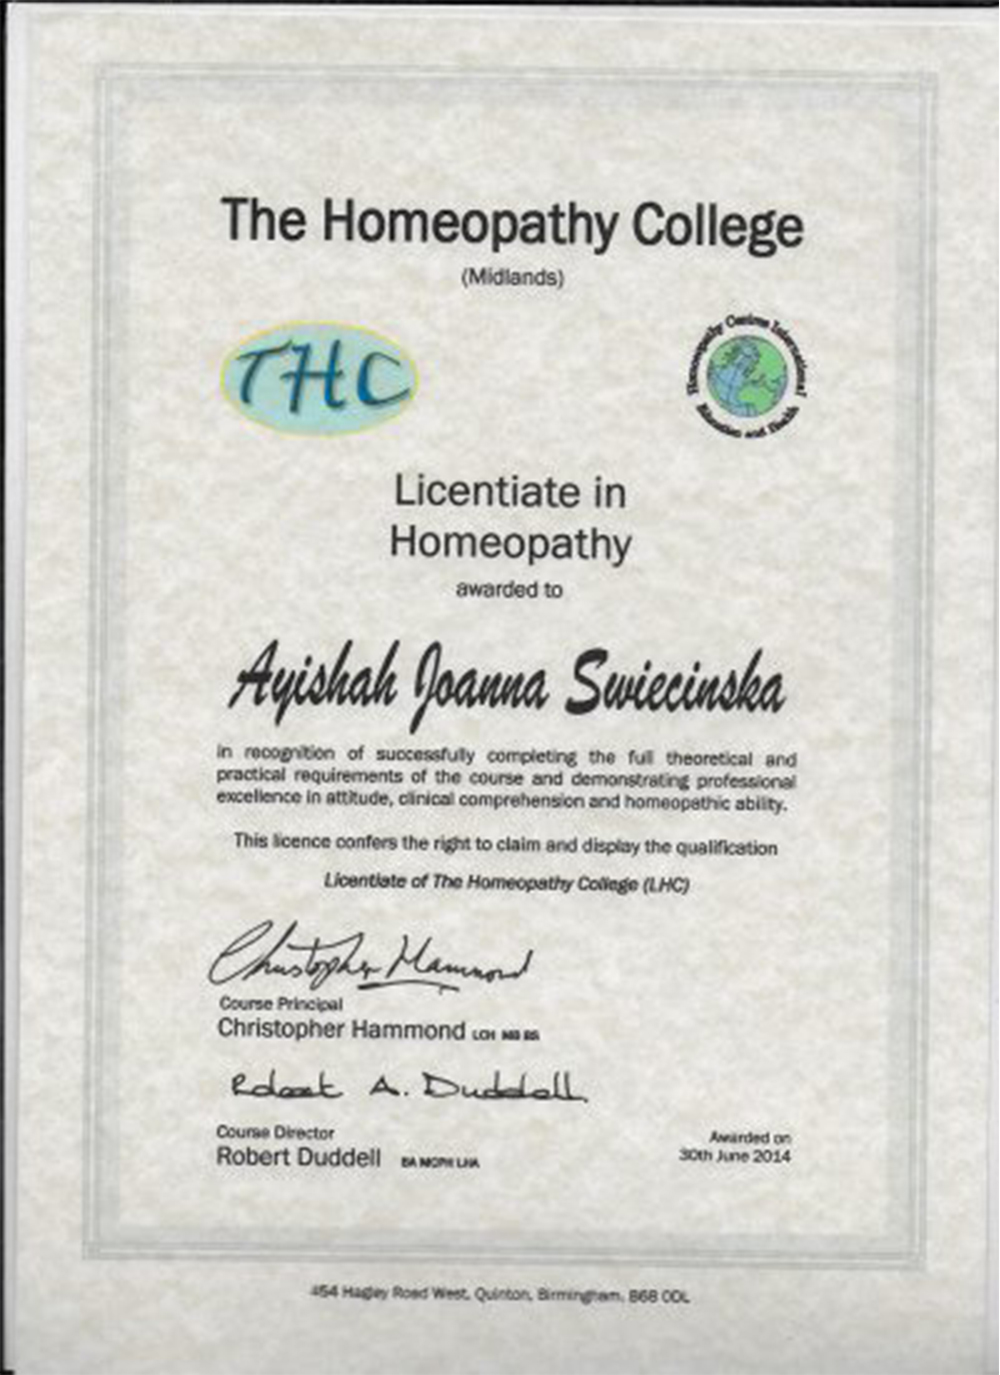 The Homeopathy College